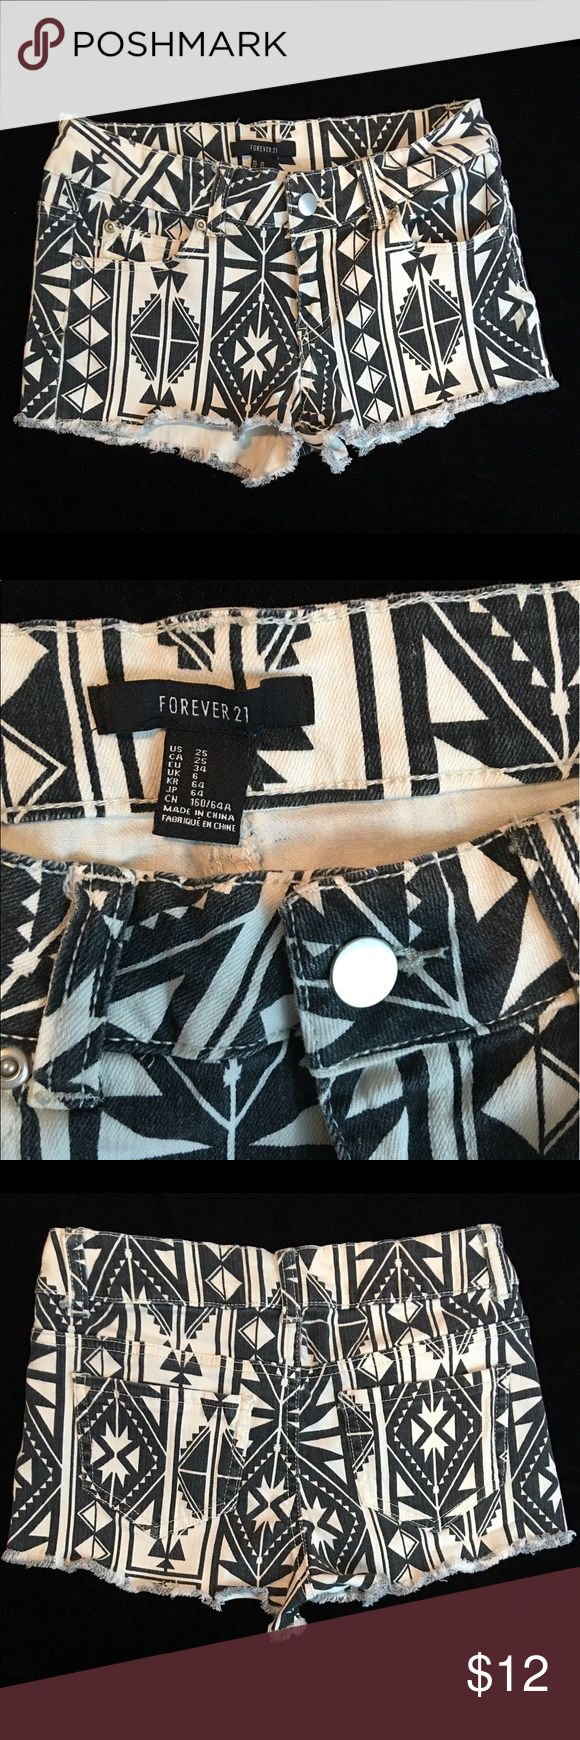 [FOREVER 21] Aztec Tribal Print Daisy Dukes Sz 25 FOREVER 21 Black & White AZTEC print Shorts Size 25 | Functioning front & back pockets 98% Cotton & 2% Spandex Waist - 13 inches - measured flat across Total length - 9 inches The perfect length for a bikini coverup or to wear alone. Great neutral colors that match well with most other colors 🎯Bundle & Save🎯   📦Items paid for by 8AM EST M-F ships the same day📦👍🏽😁 Forever 21 Shorts Jean Shorts